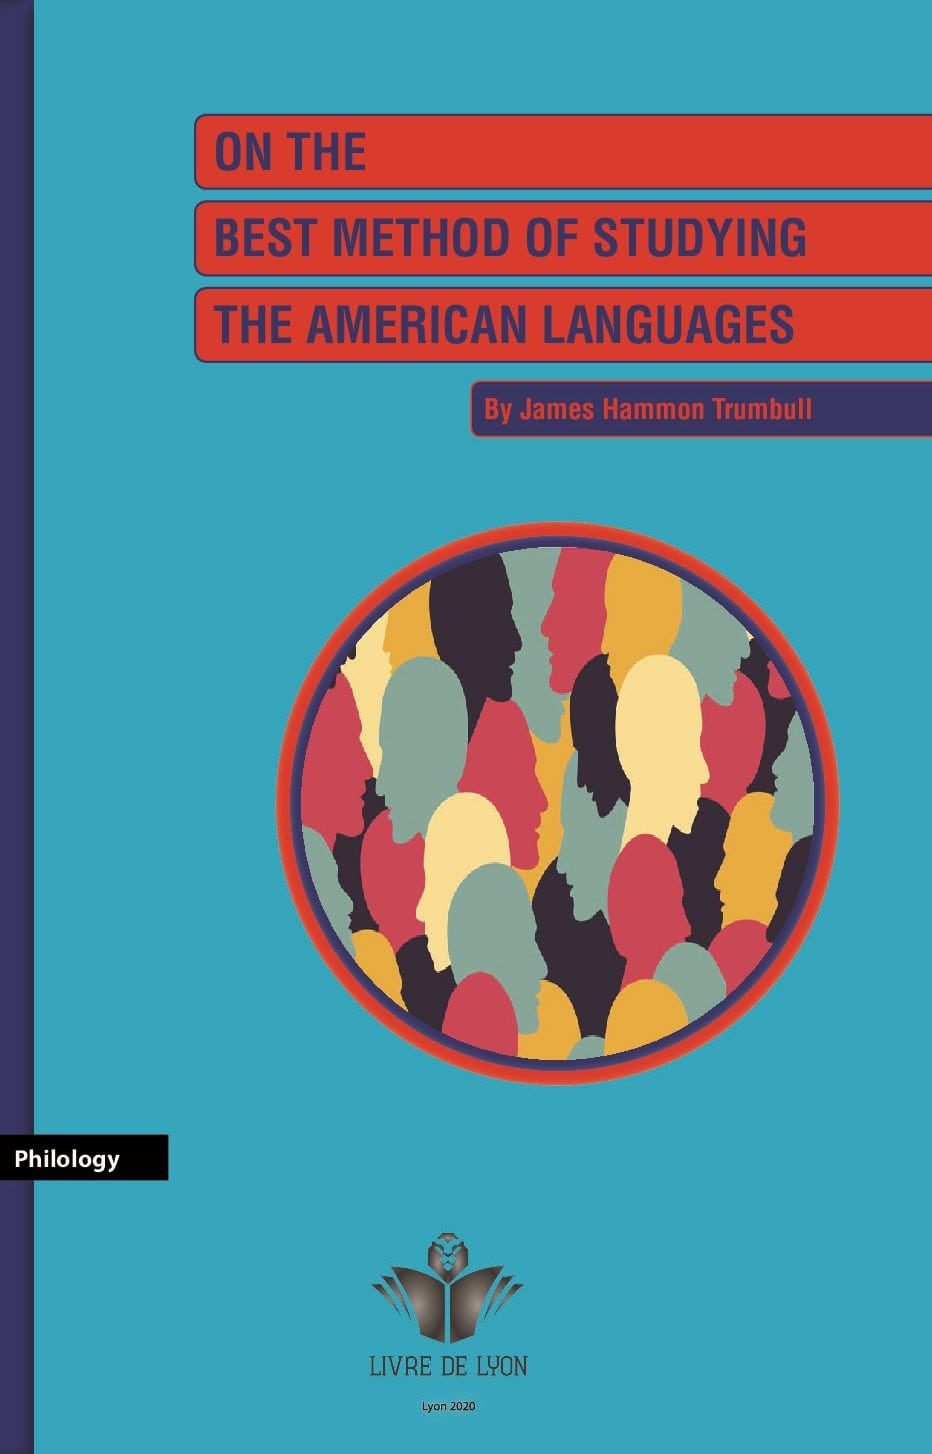 On the Best Method of Studying the American Languages